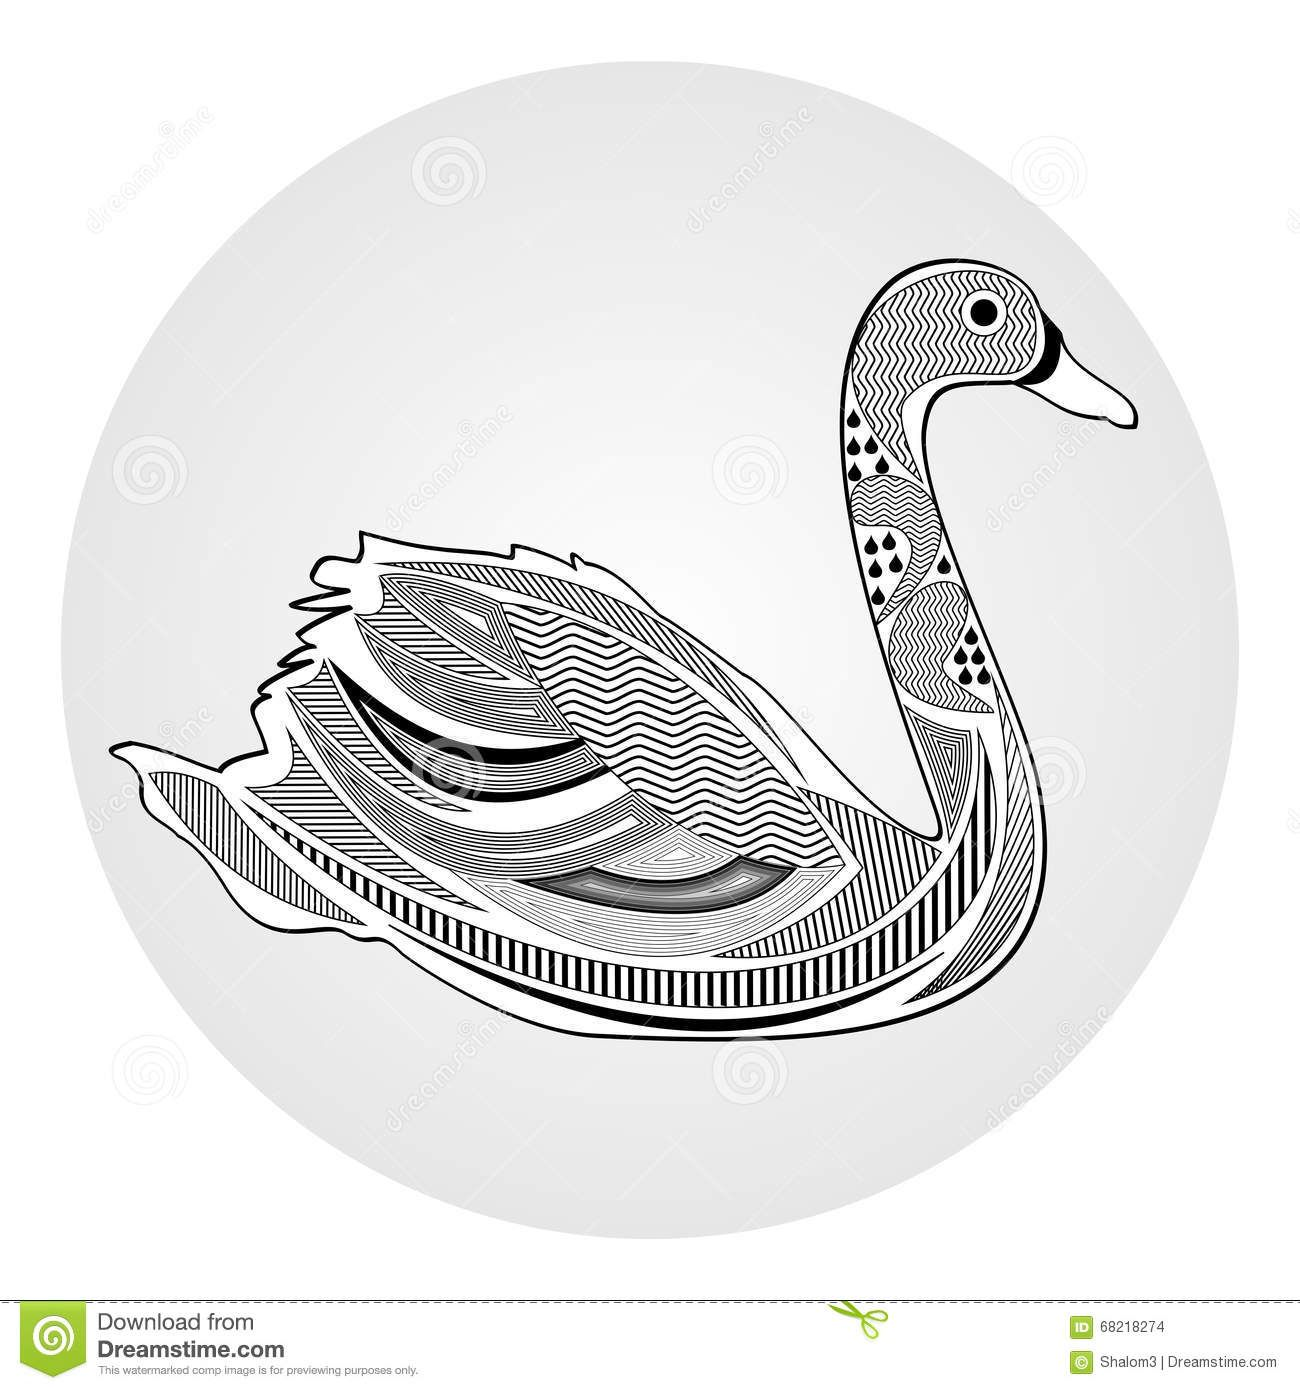 Swan, black and white drawing with hatched and patterned body parts ...